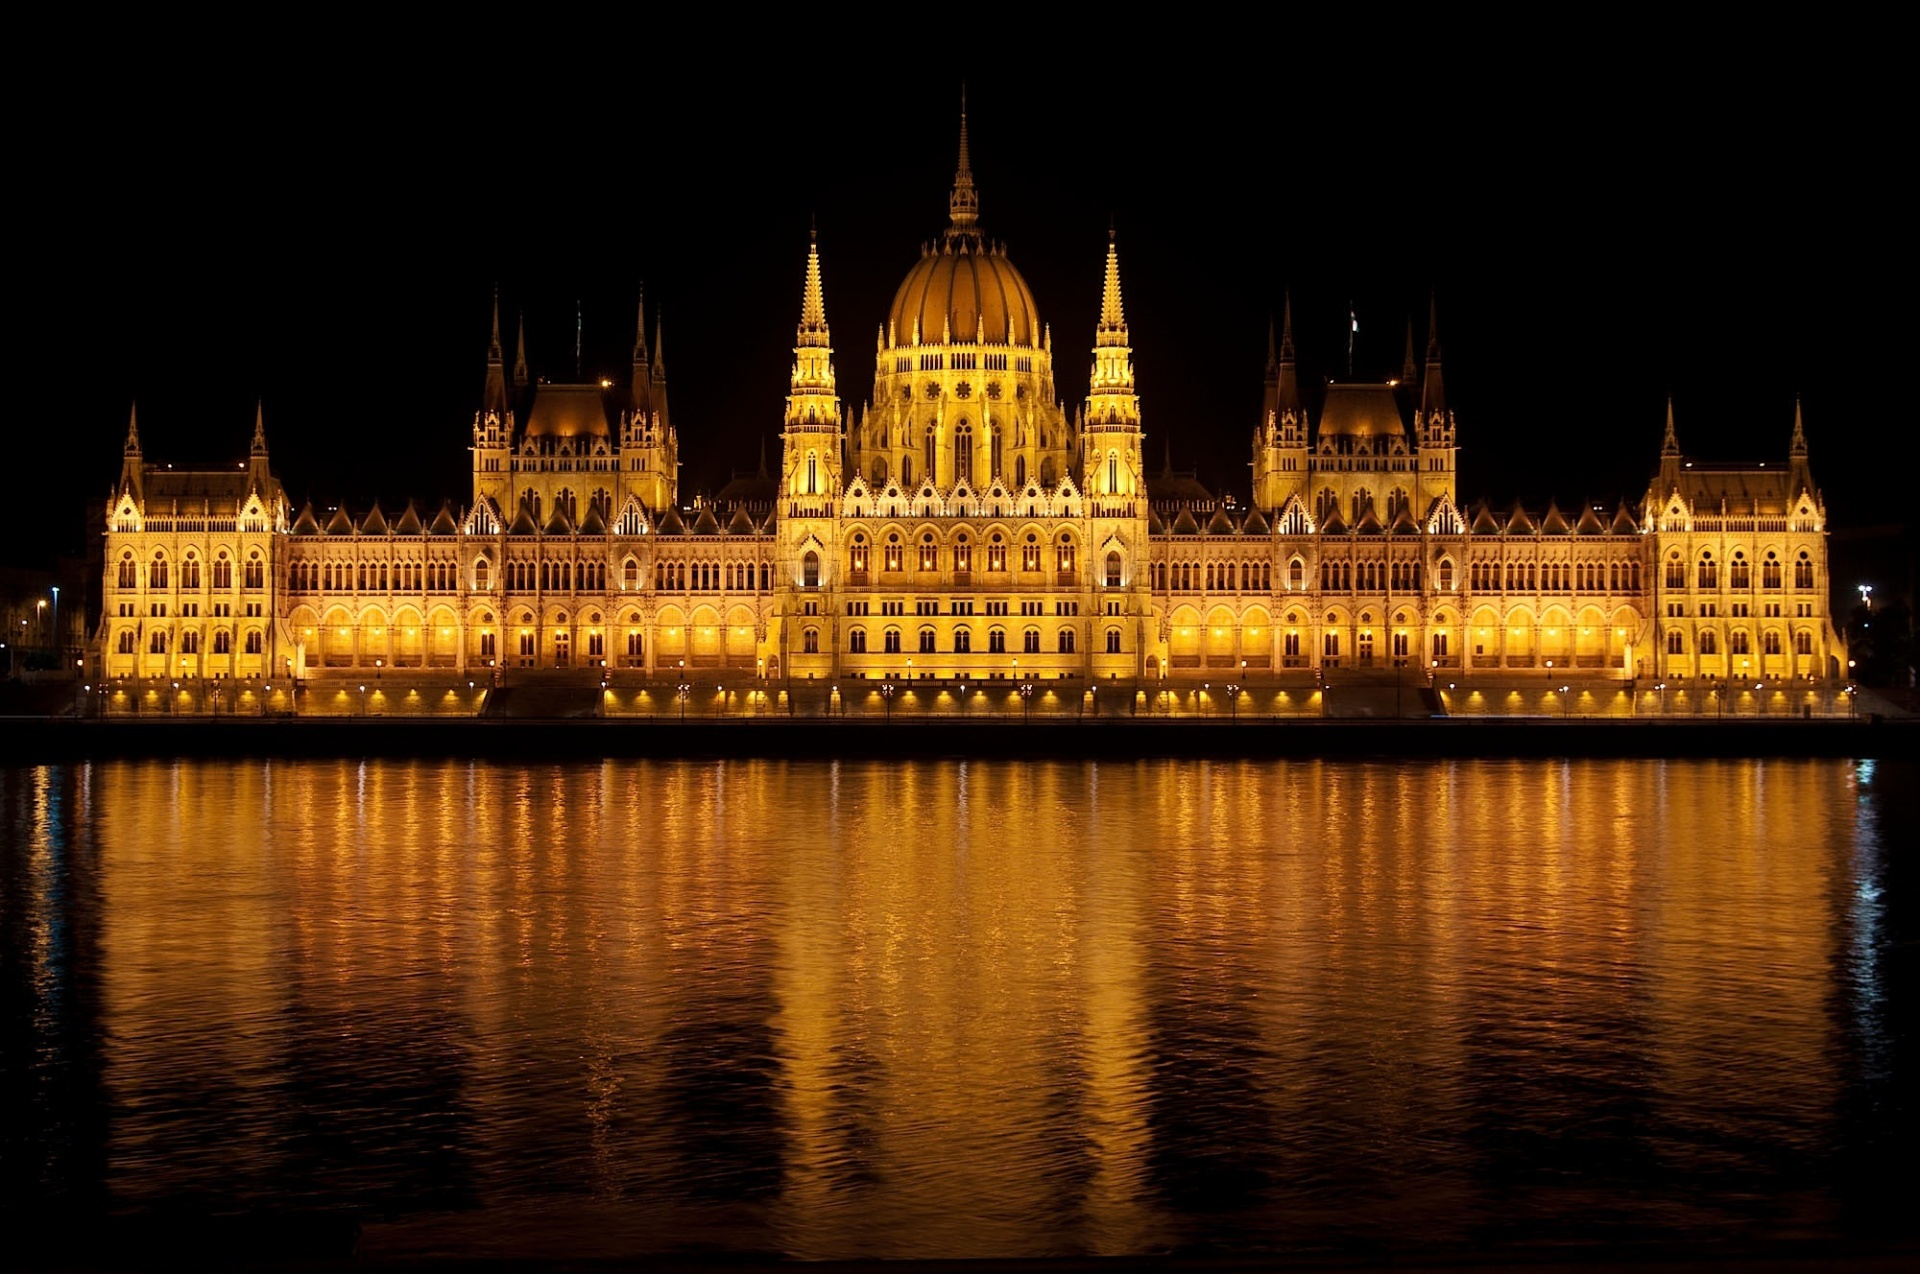 Parliament, City Lights, Night Reflections